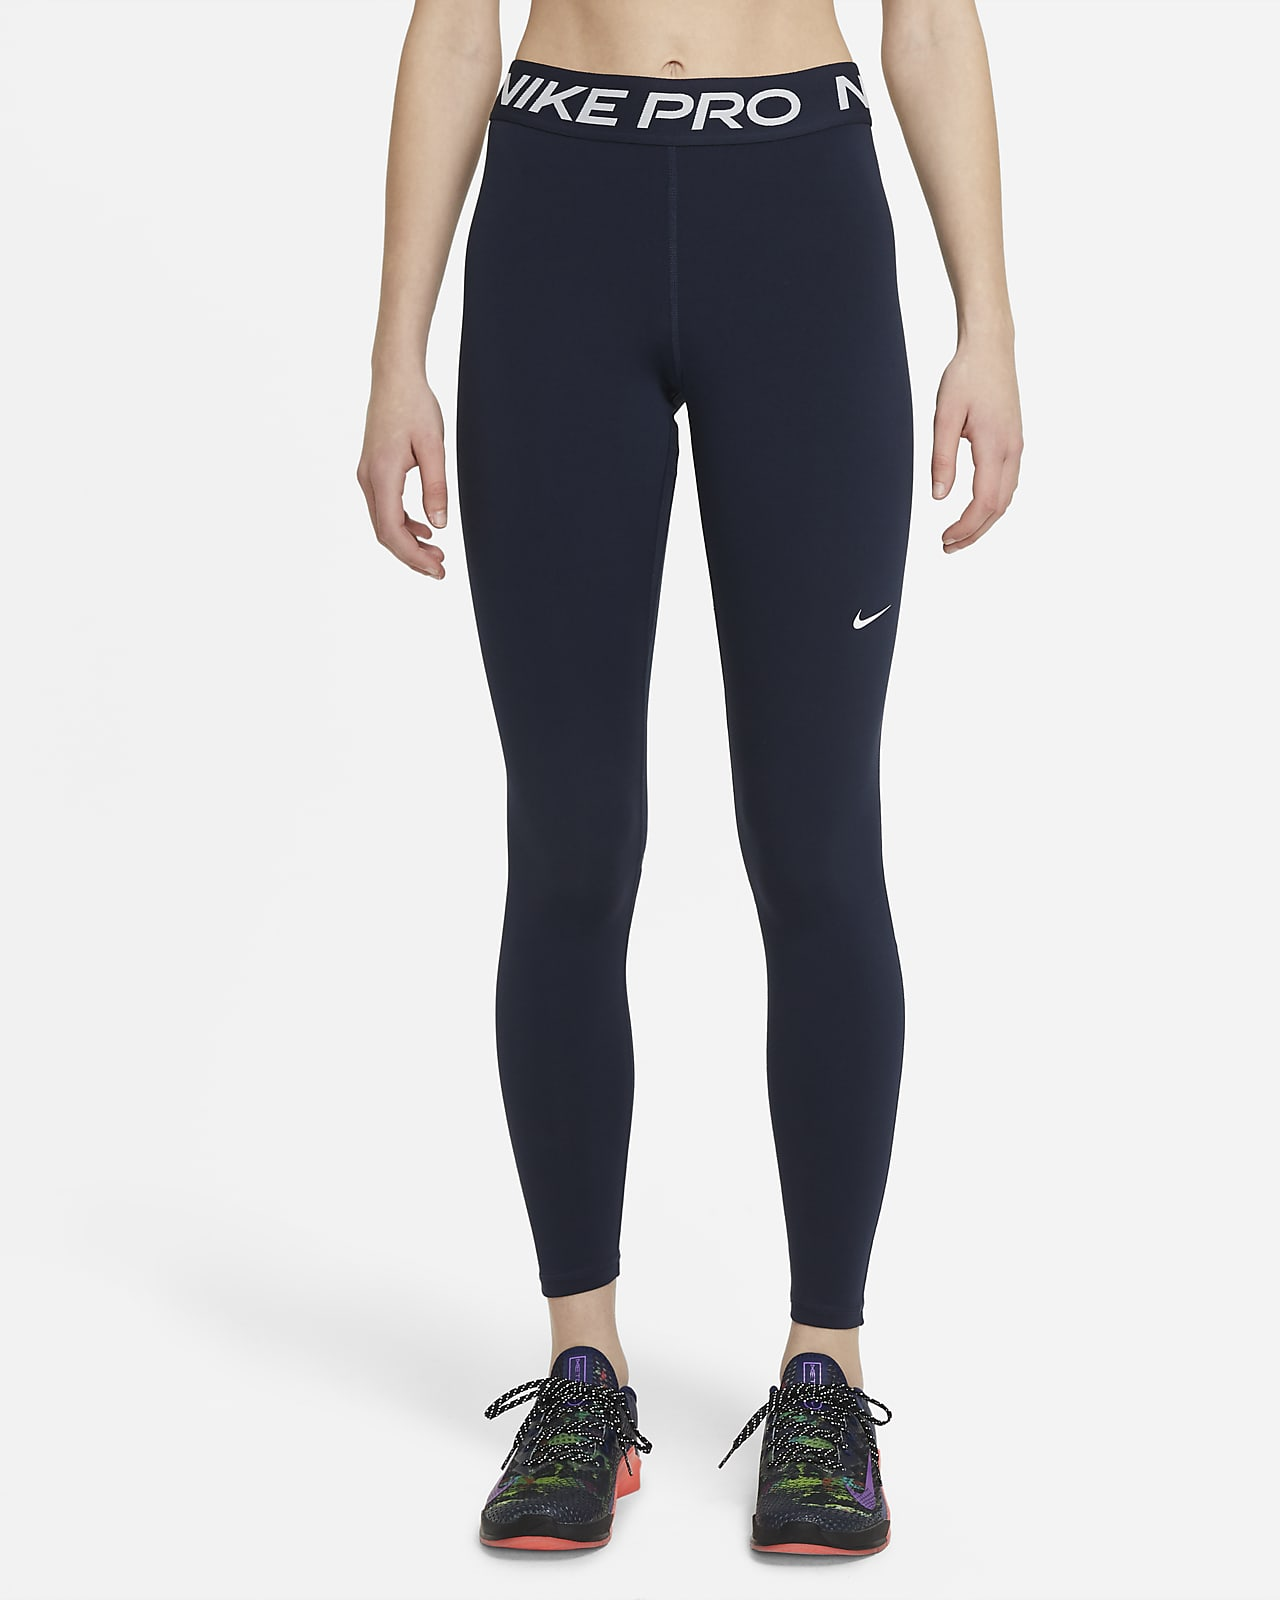 Nike Pro Women's Mid-Rise Leggings